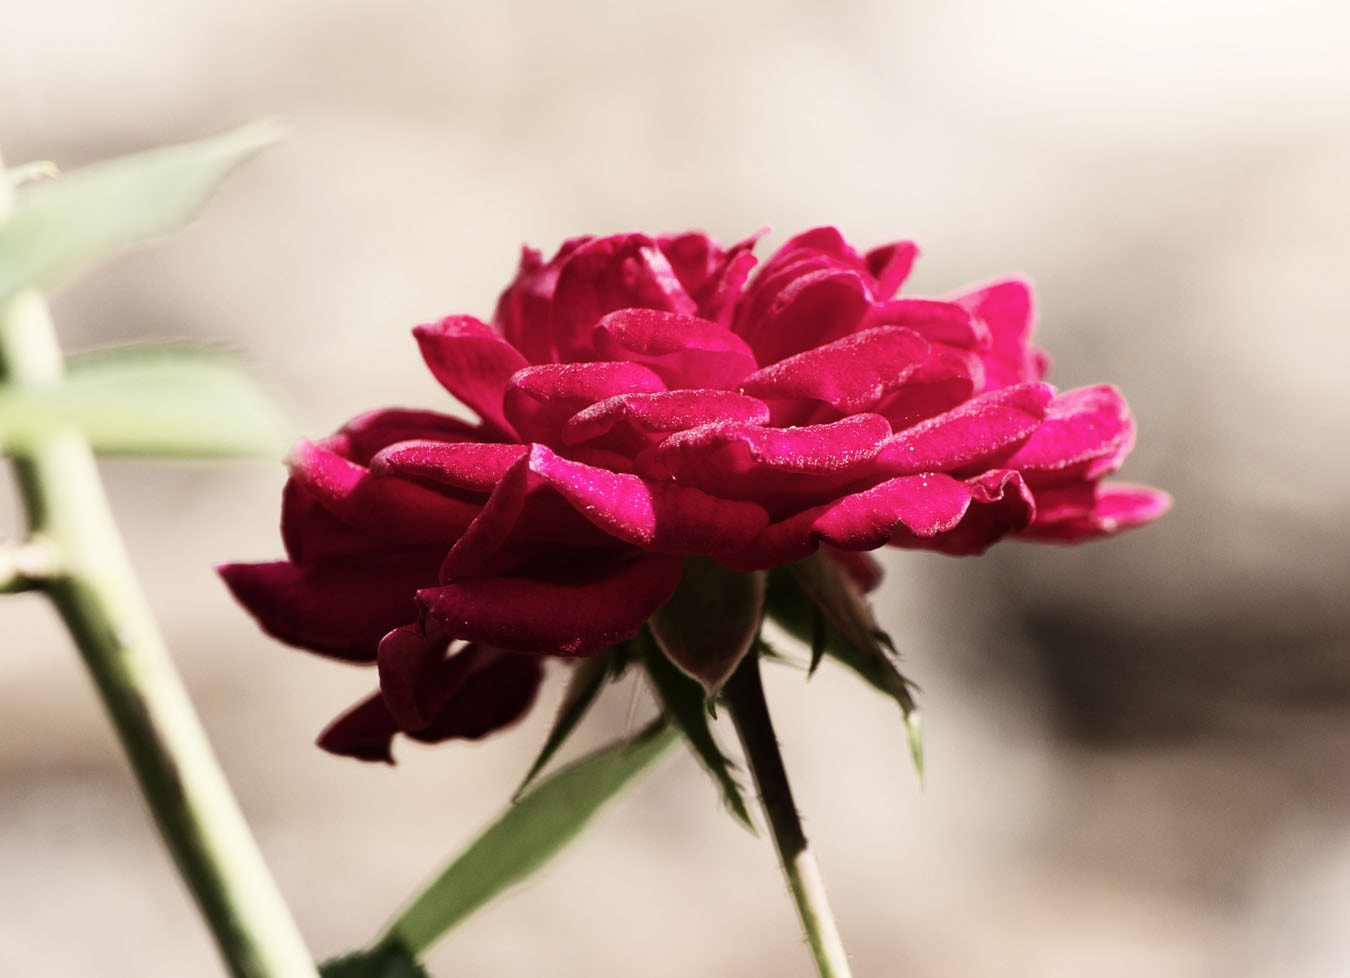 Photograph Red minature rose by DS Conyers on 500px